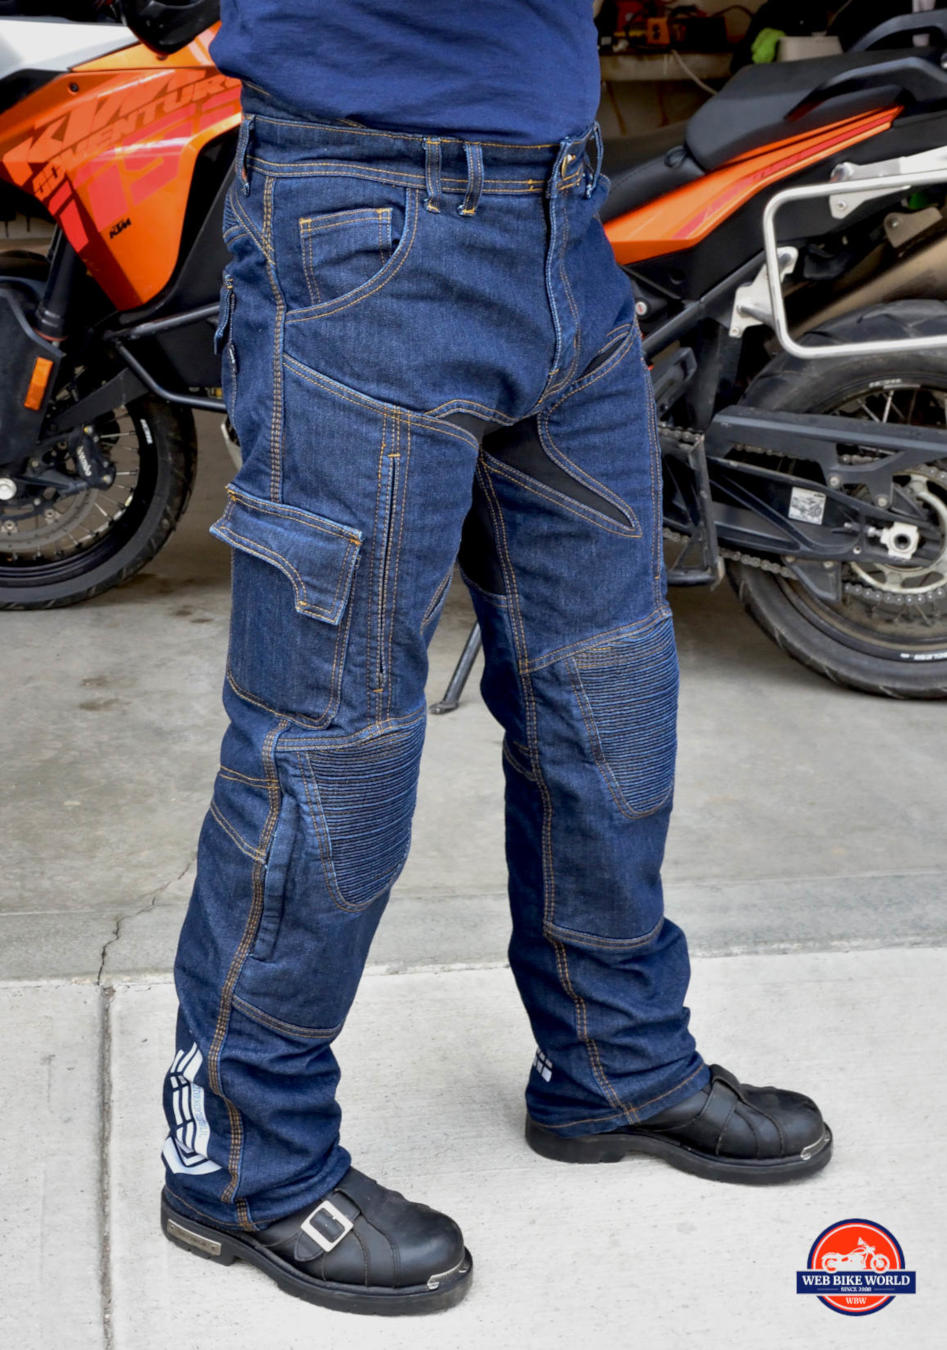 Trilobyte Probut X-Factor Cordura Denim Jeans Off-side View